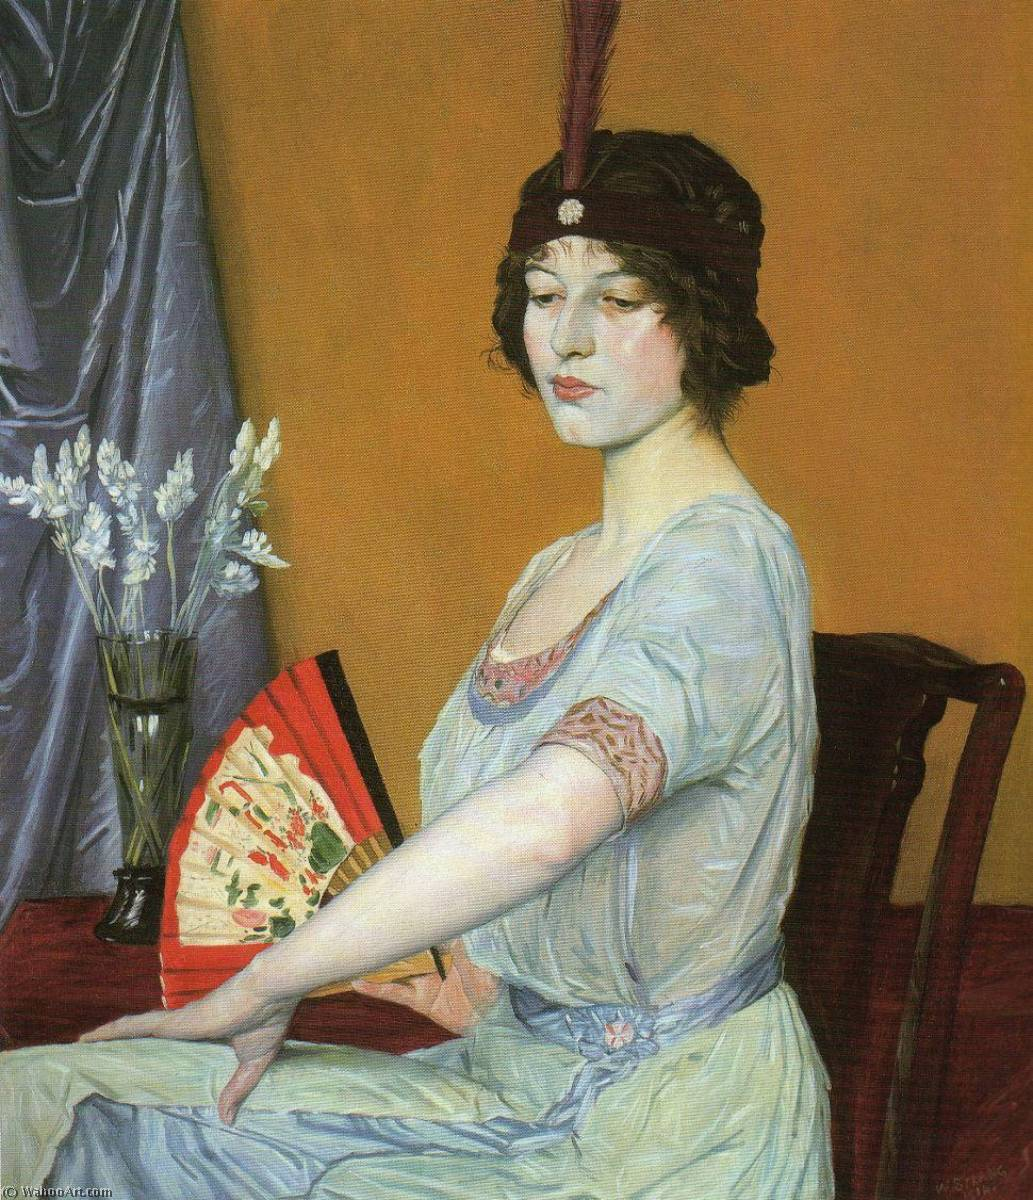 Le Fan japonaise, 1910 de William Strang (1859-1921)